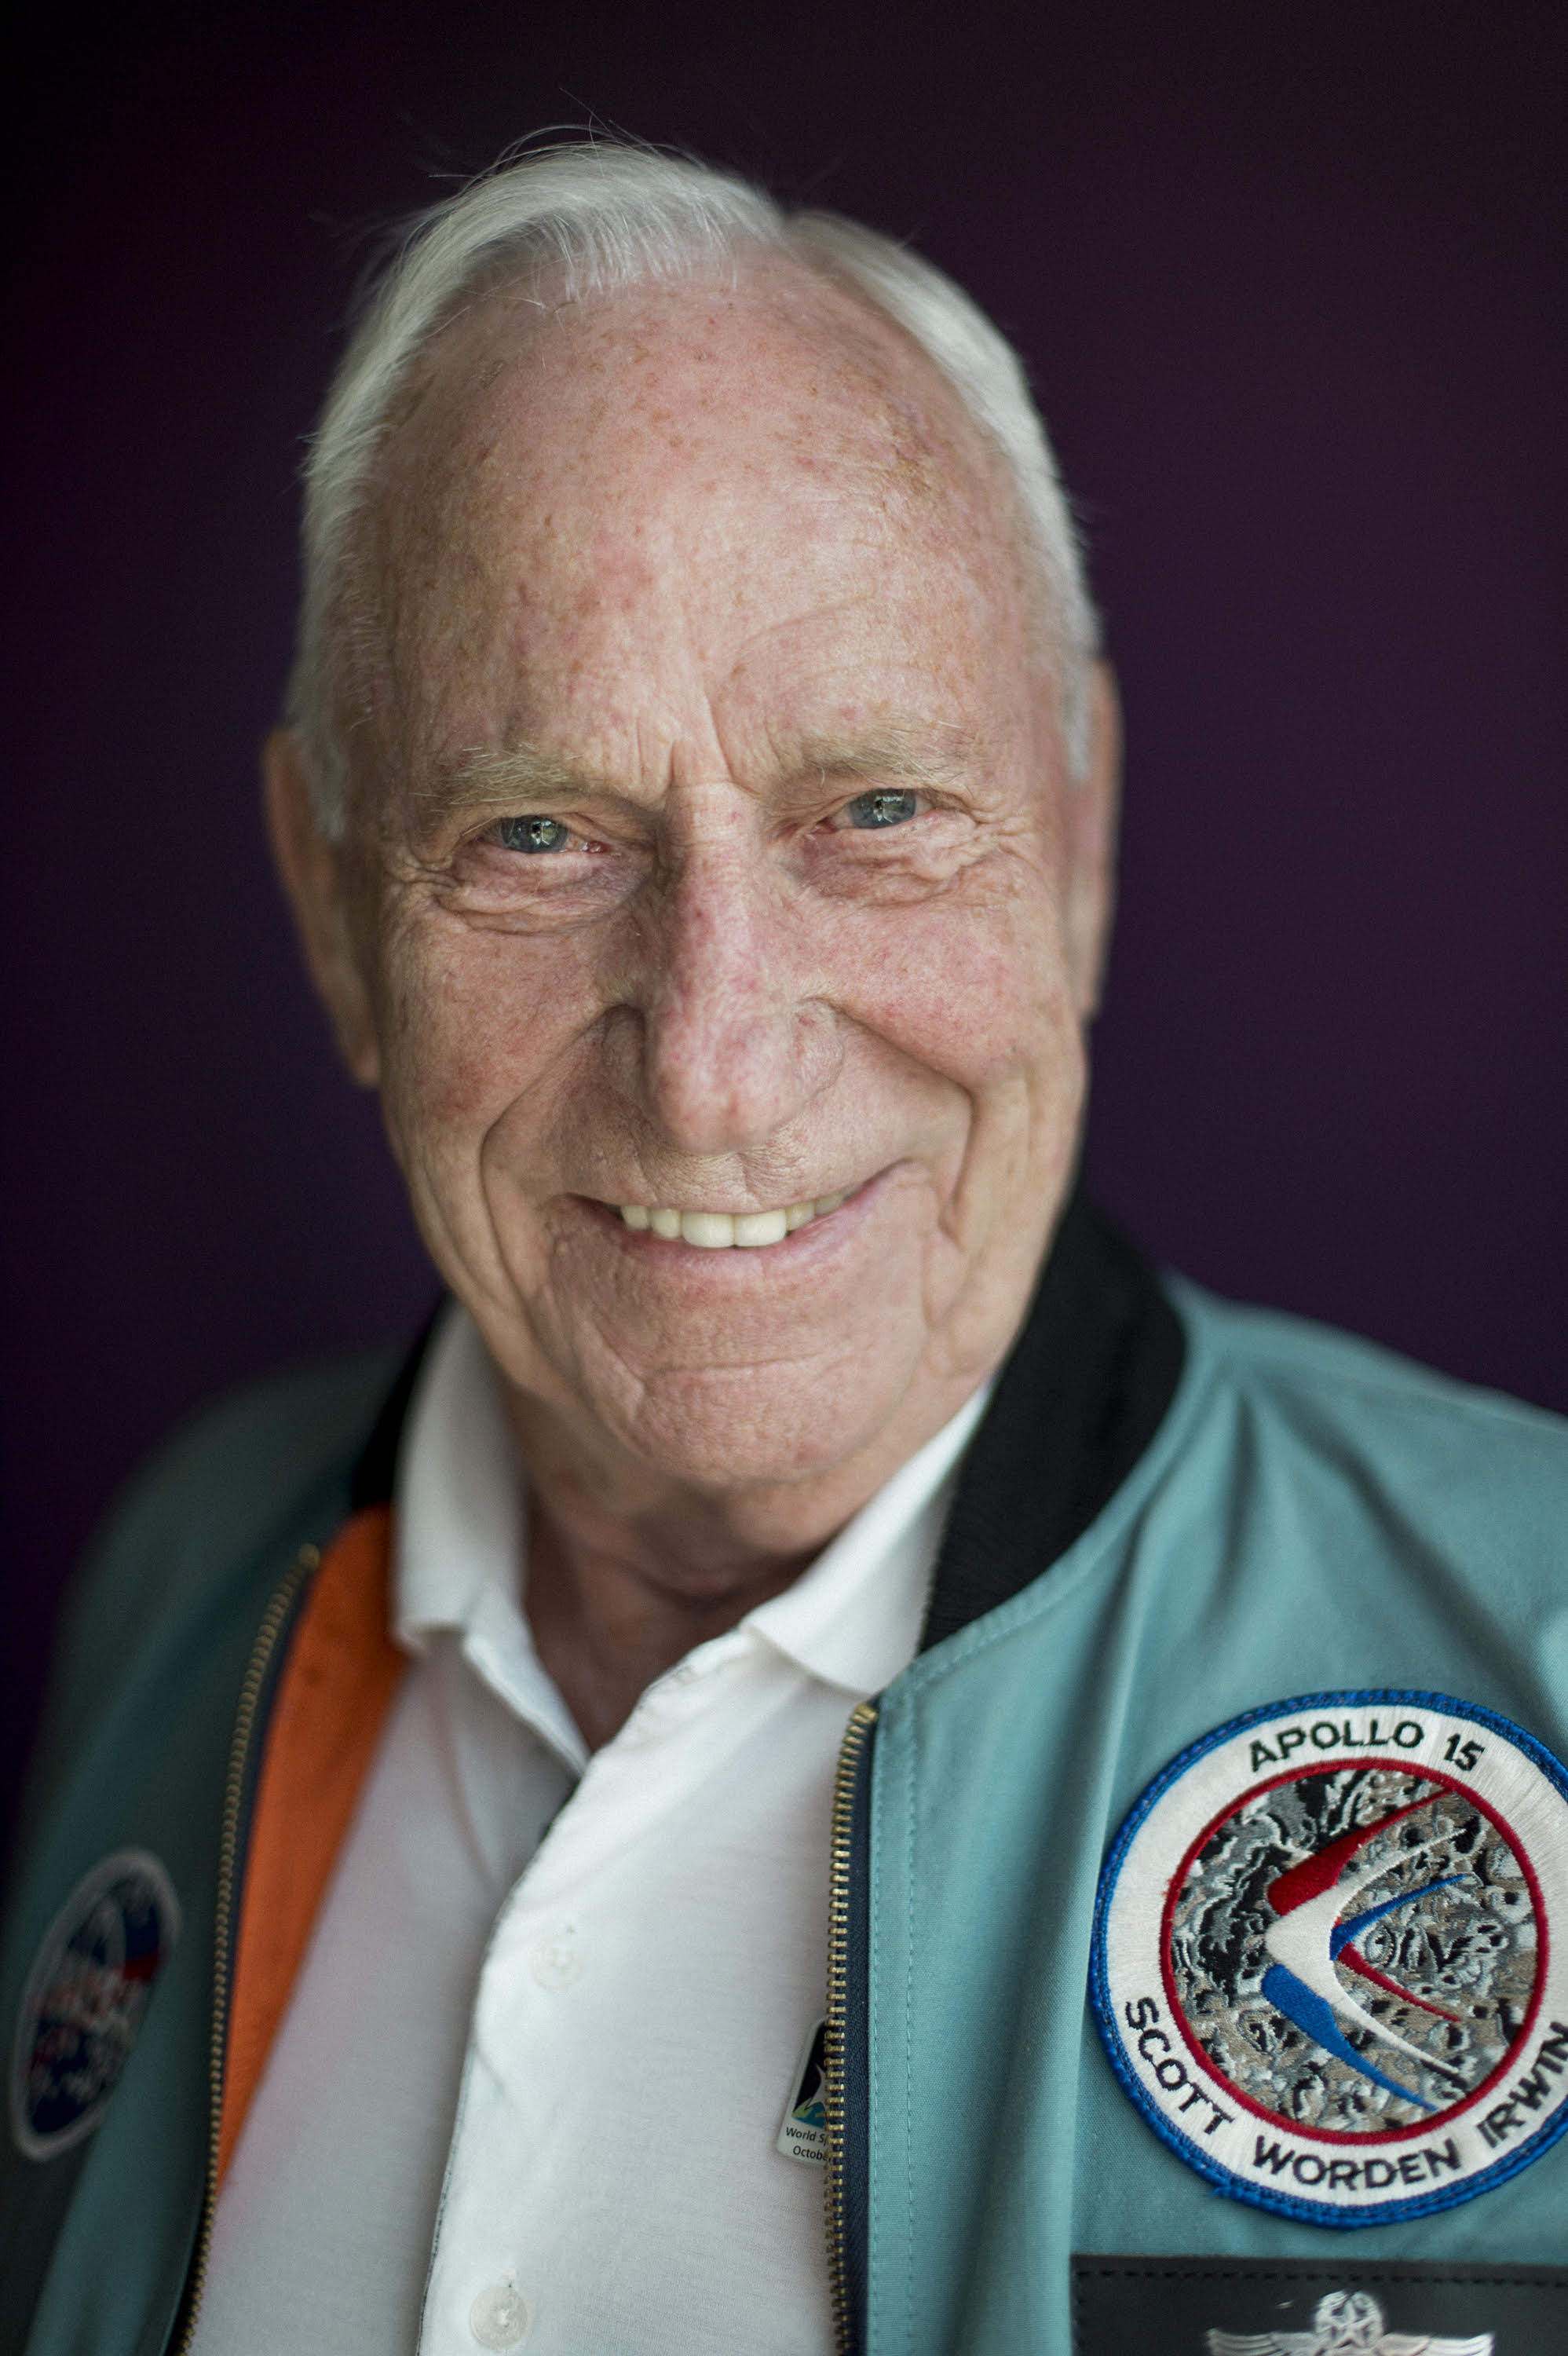 Al Worden 2016 image credit Michael Cockerham Photography .jpg